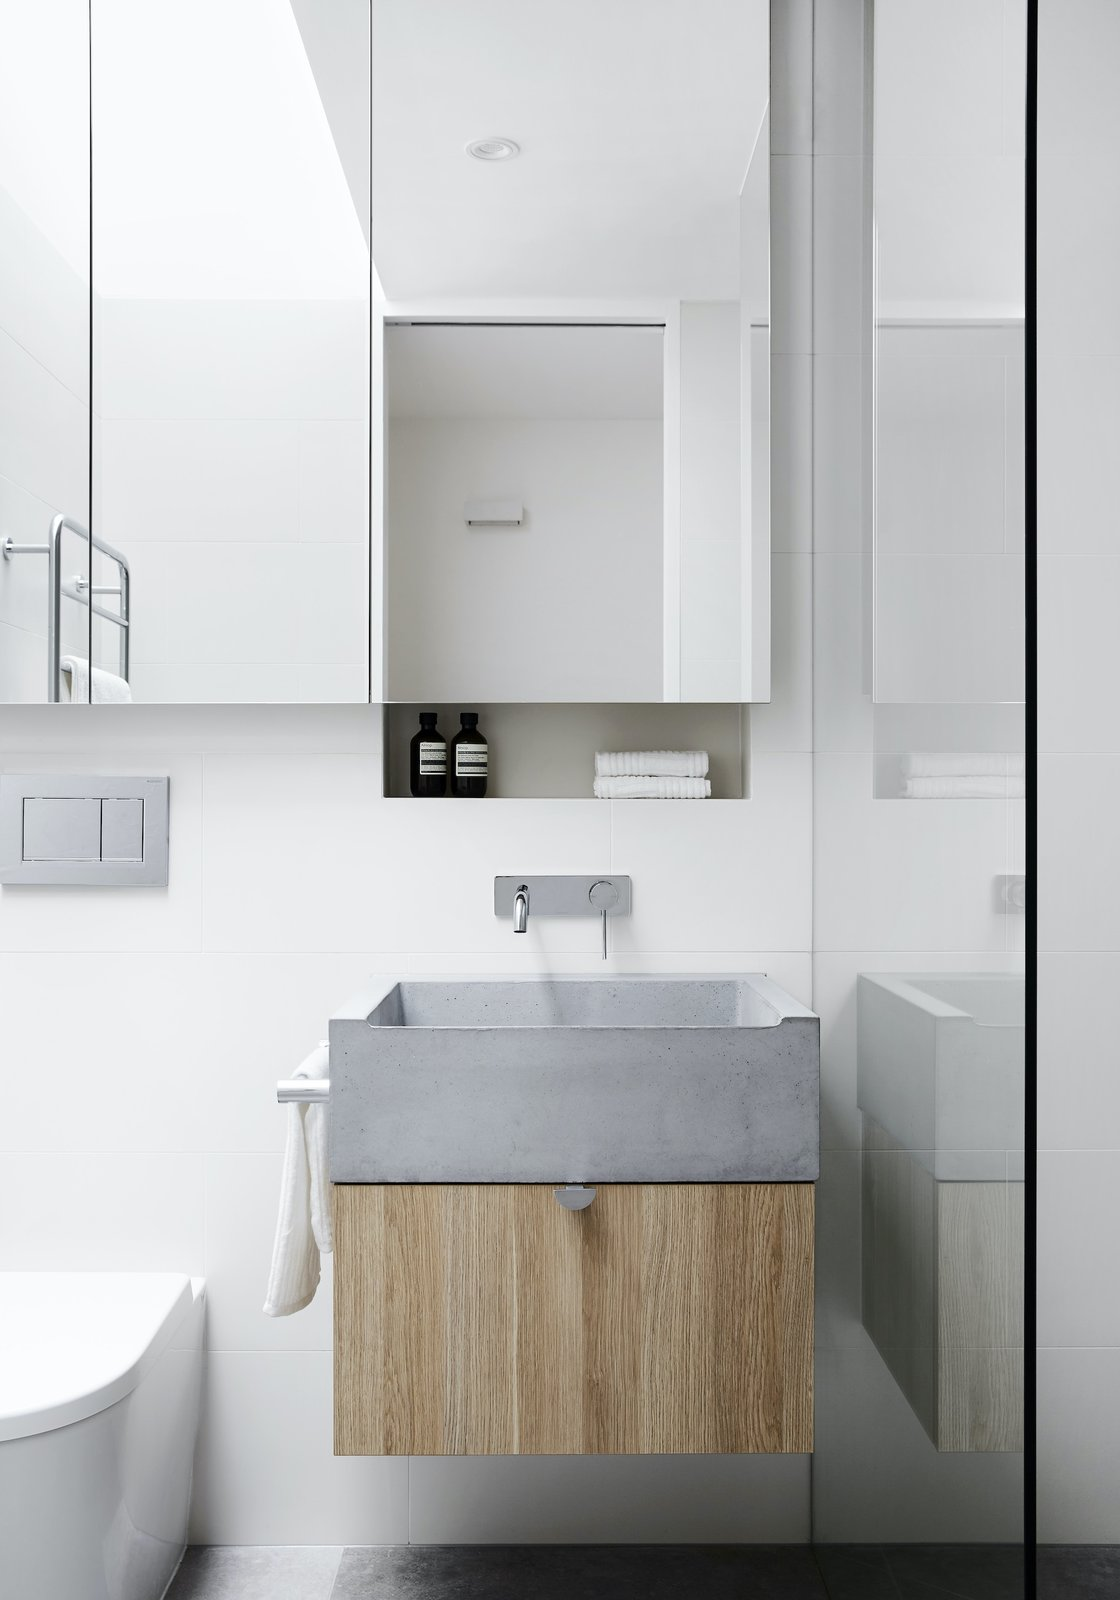 Bathroom at Dot's House by Atlas Architects.